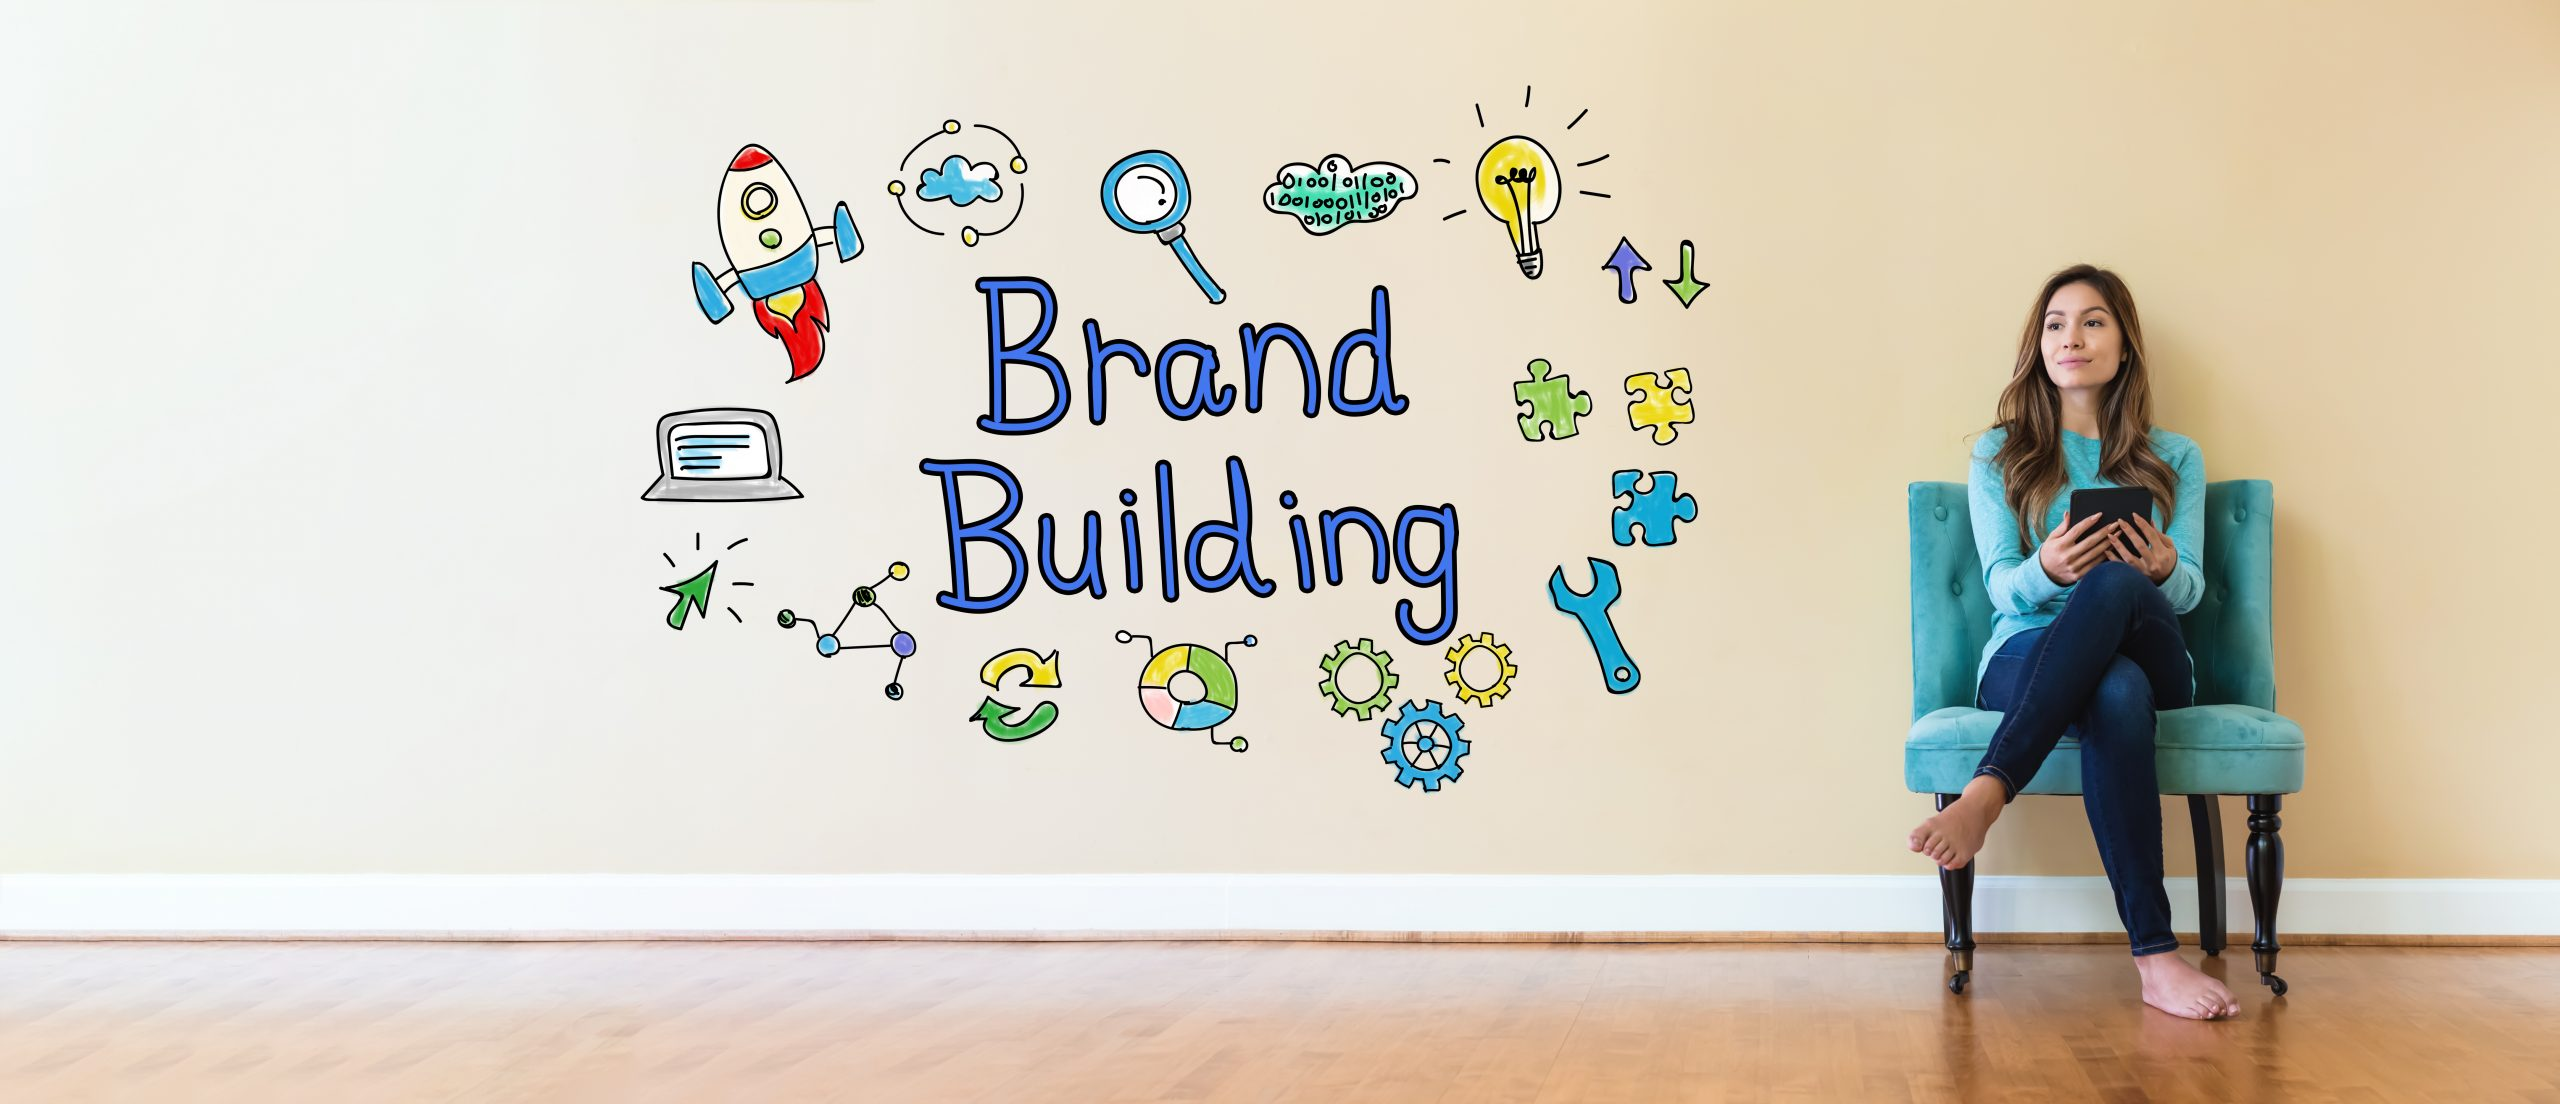 Make a brew - Building your brand online